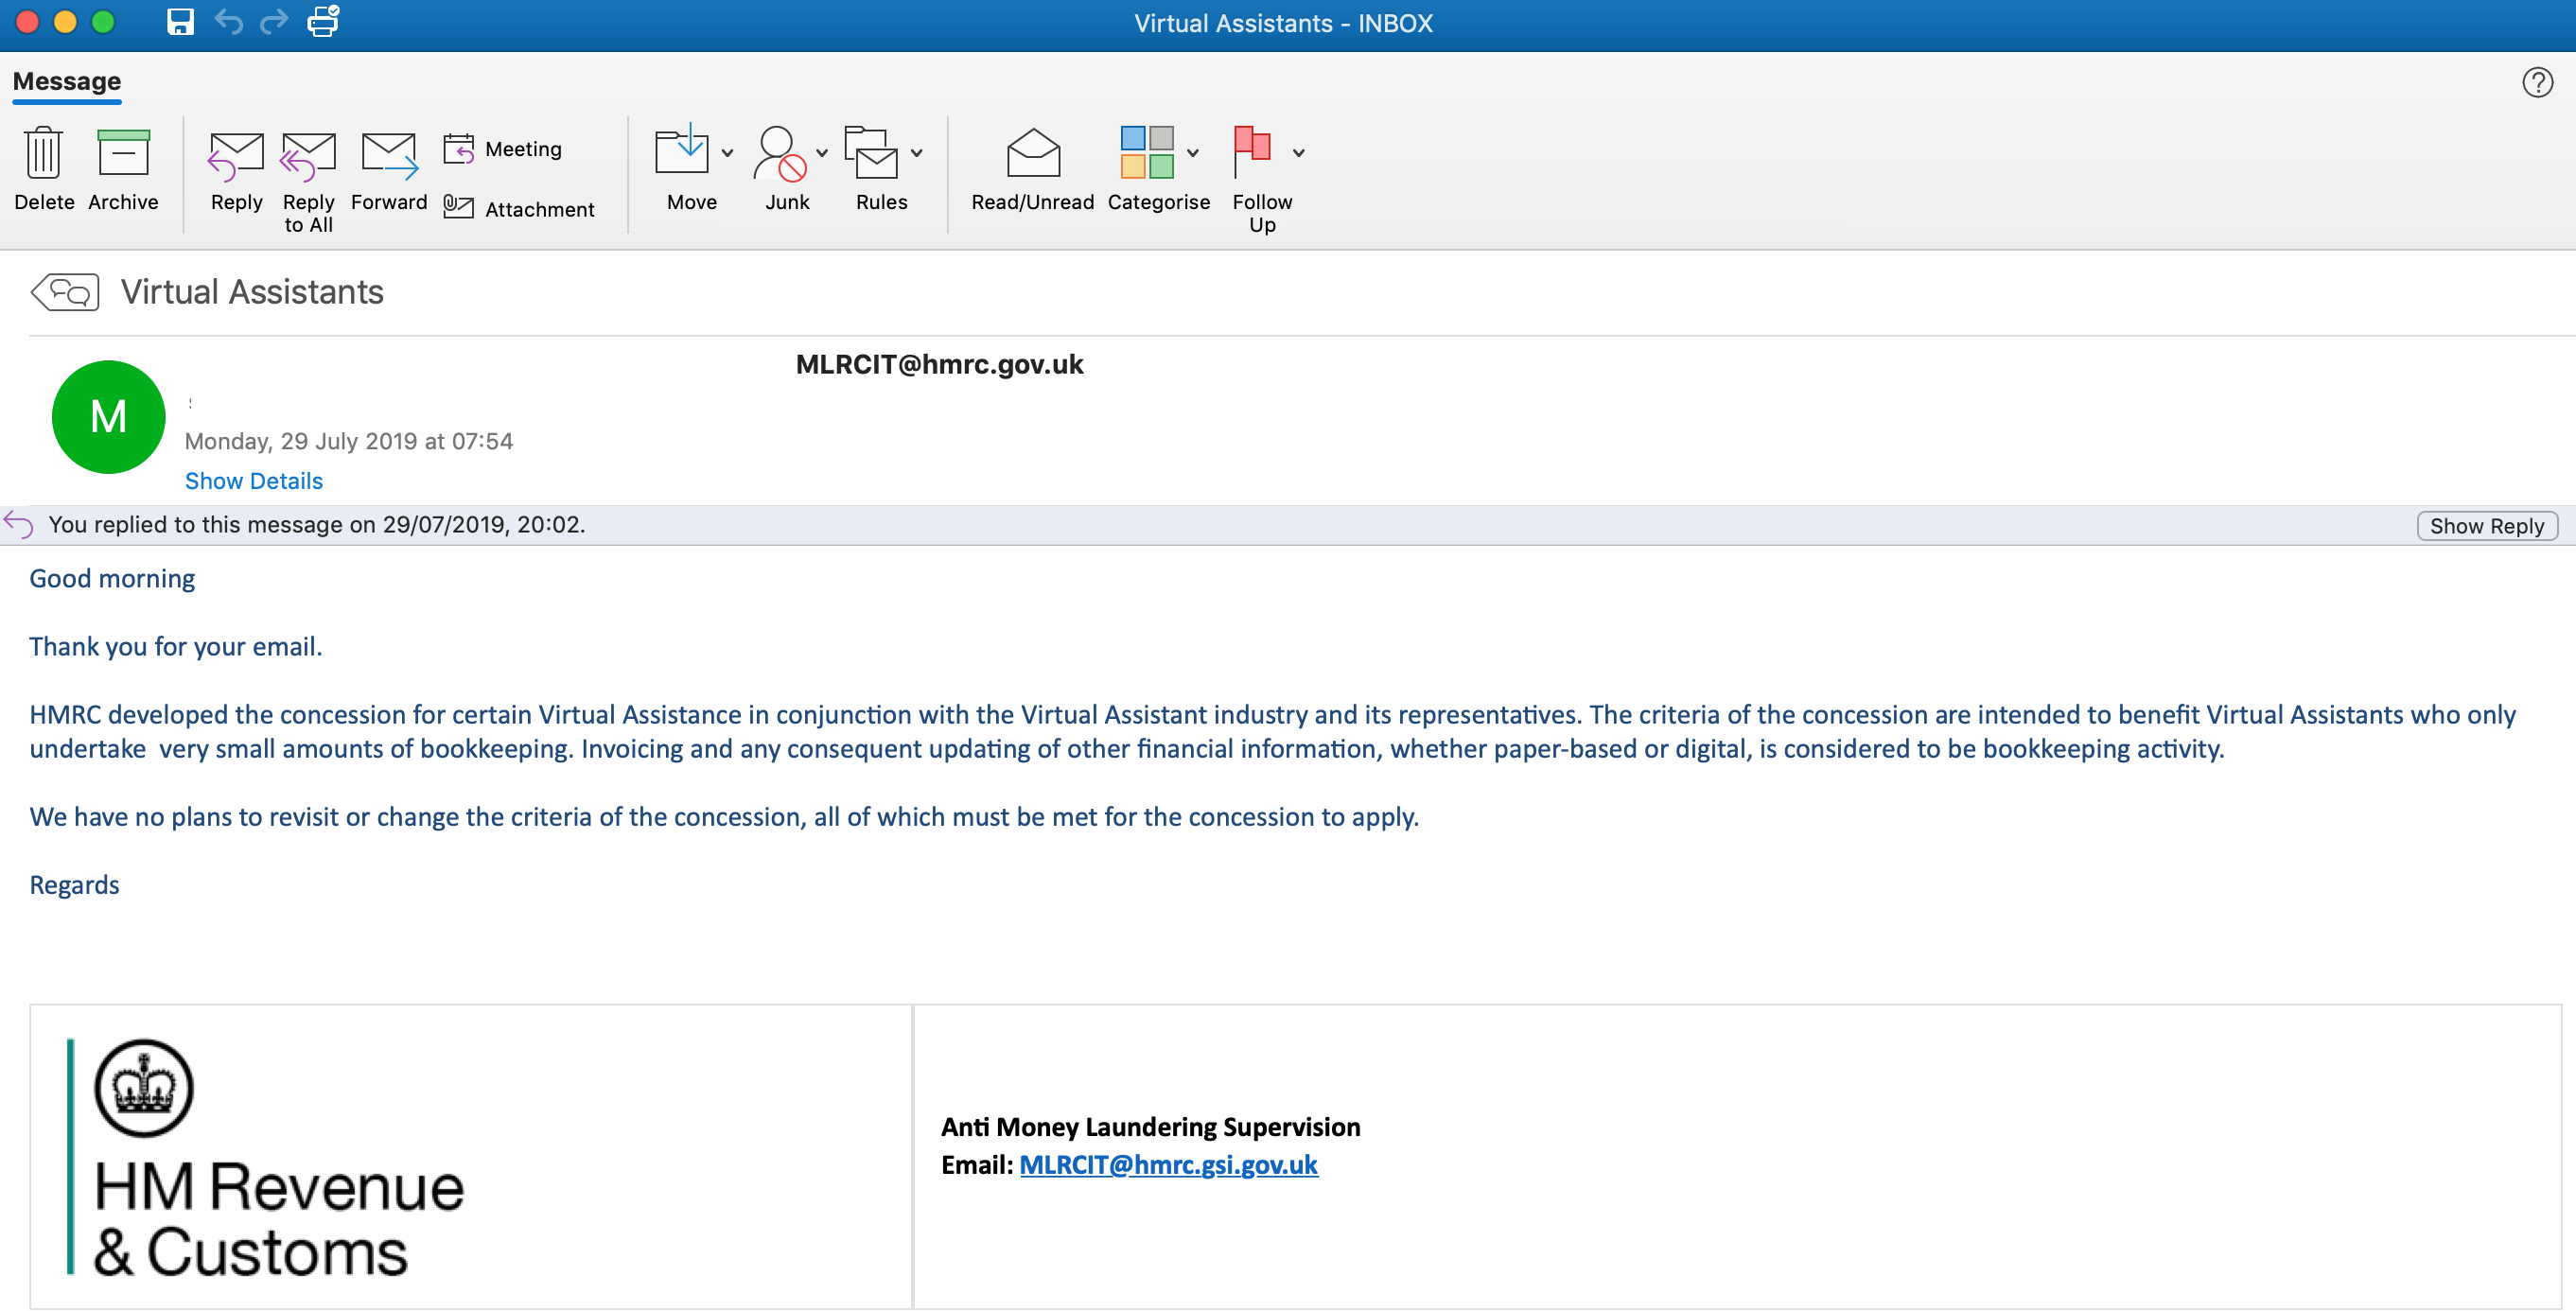 Screen shot of email from HMRC stating that they will not reconsider their position on the AML concession and that VAs must meet all criteria.